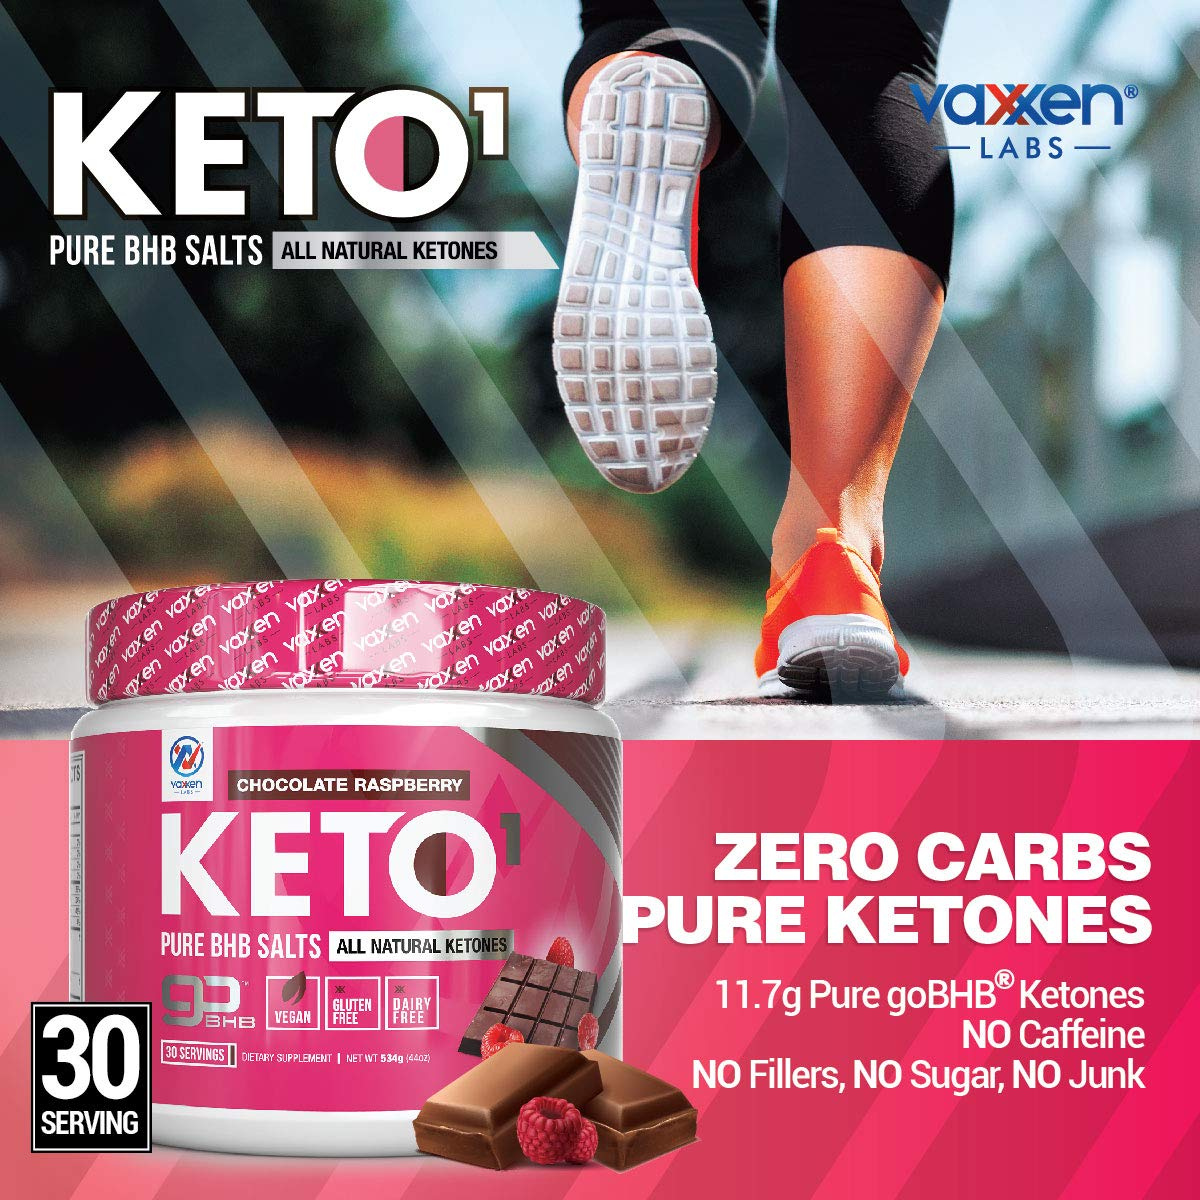 Exogenous Ketones Supplement with Beta Hydroxybutyrate BHB Salts for Ketogenic Diet - Keto Powder Drink to Help Reach Ketosis, Weight Control, Reduce Stress, Boost Energy (Chocolate Raspberry 30 SRV) by Vaxxen Labs